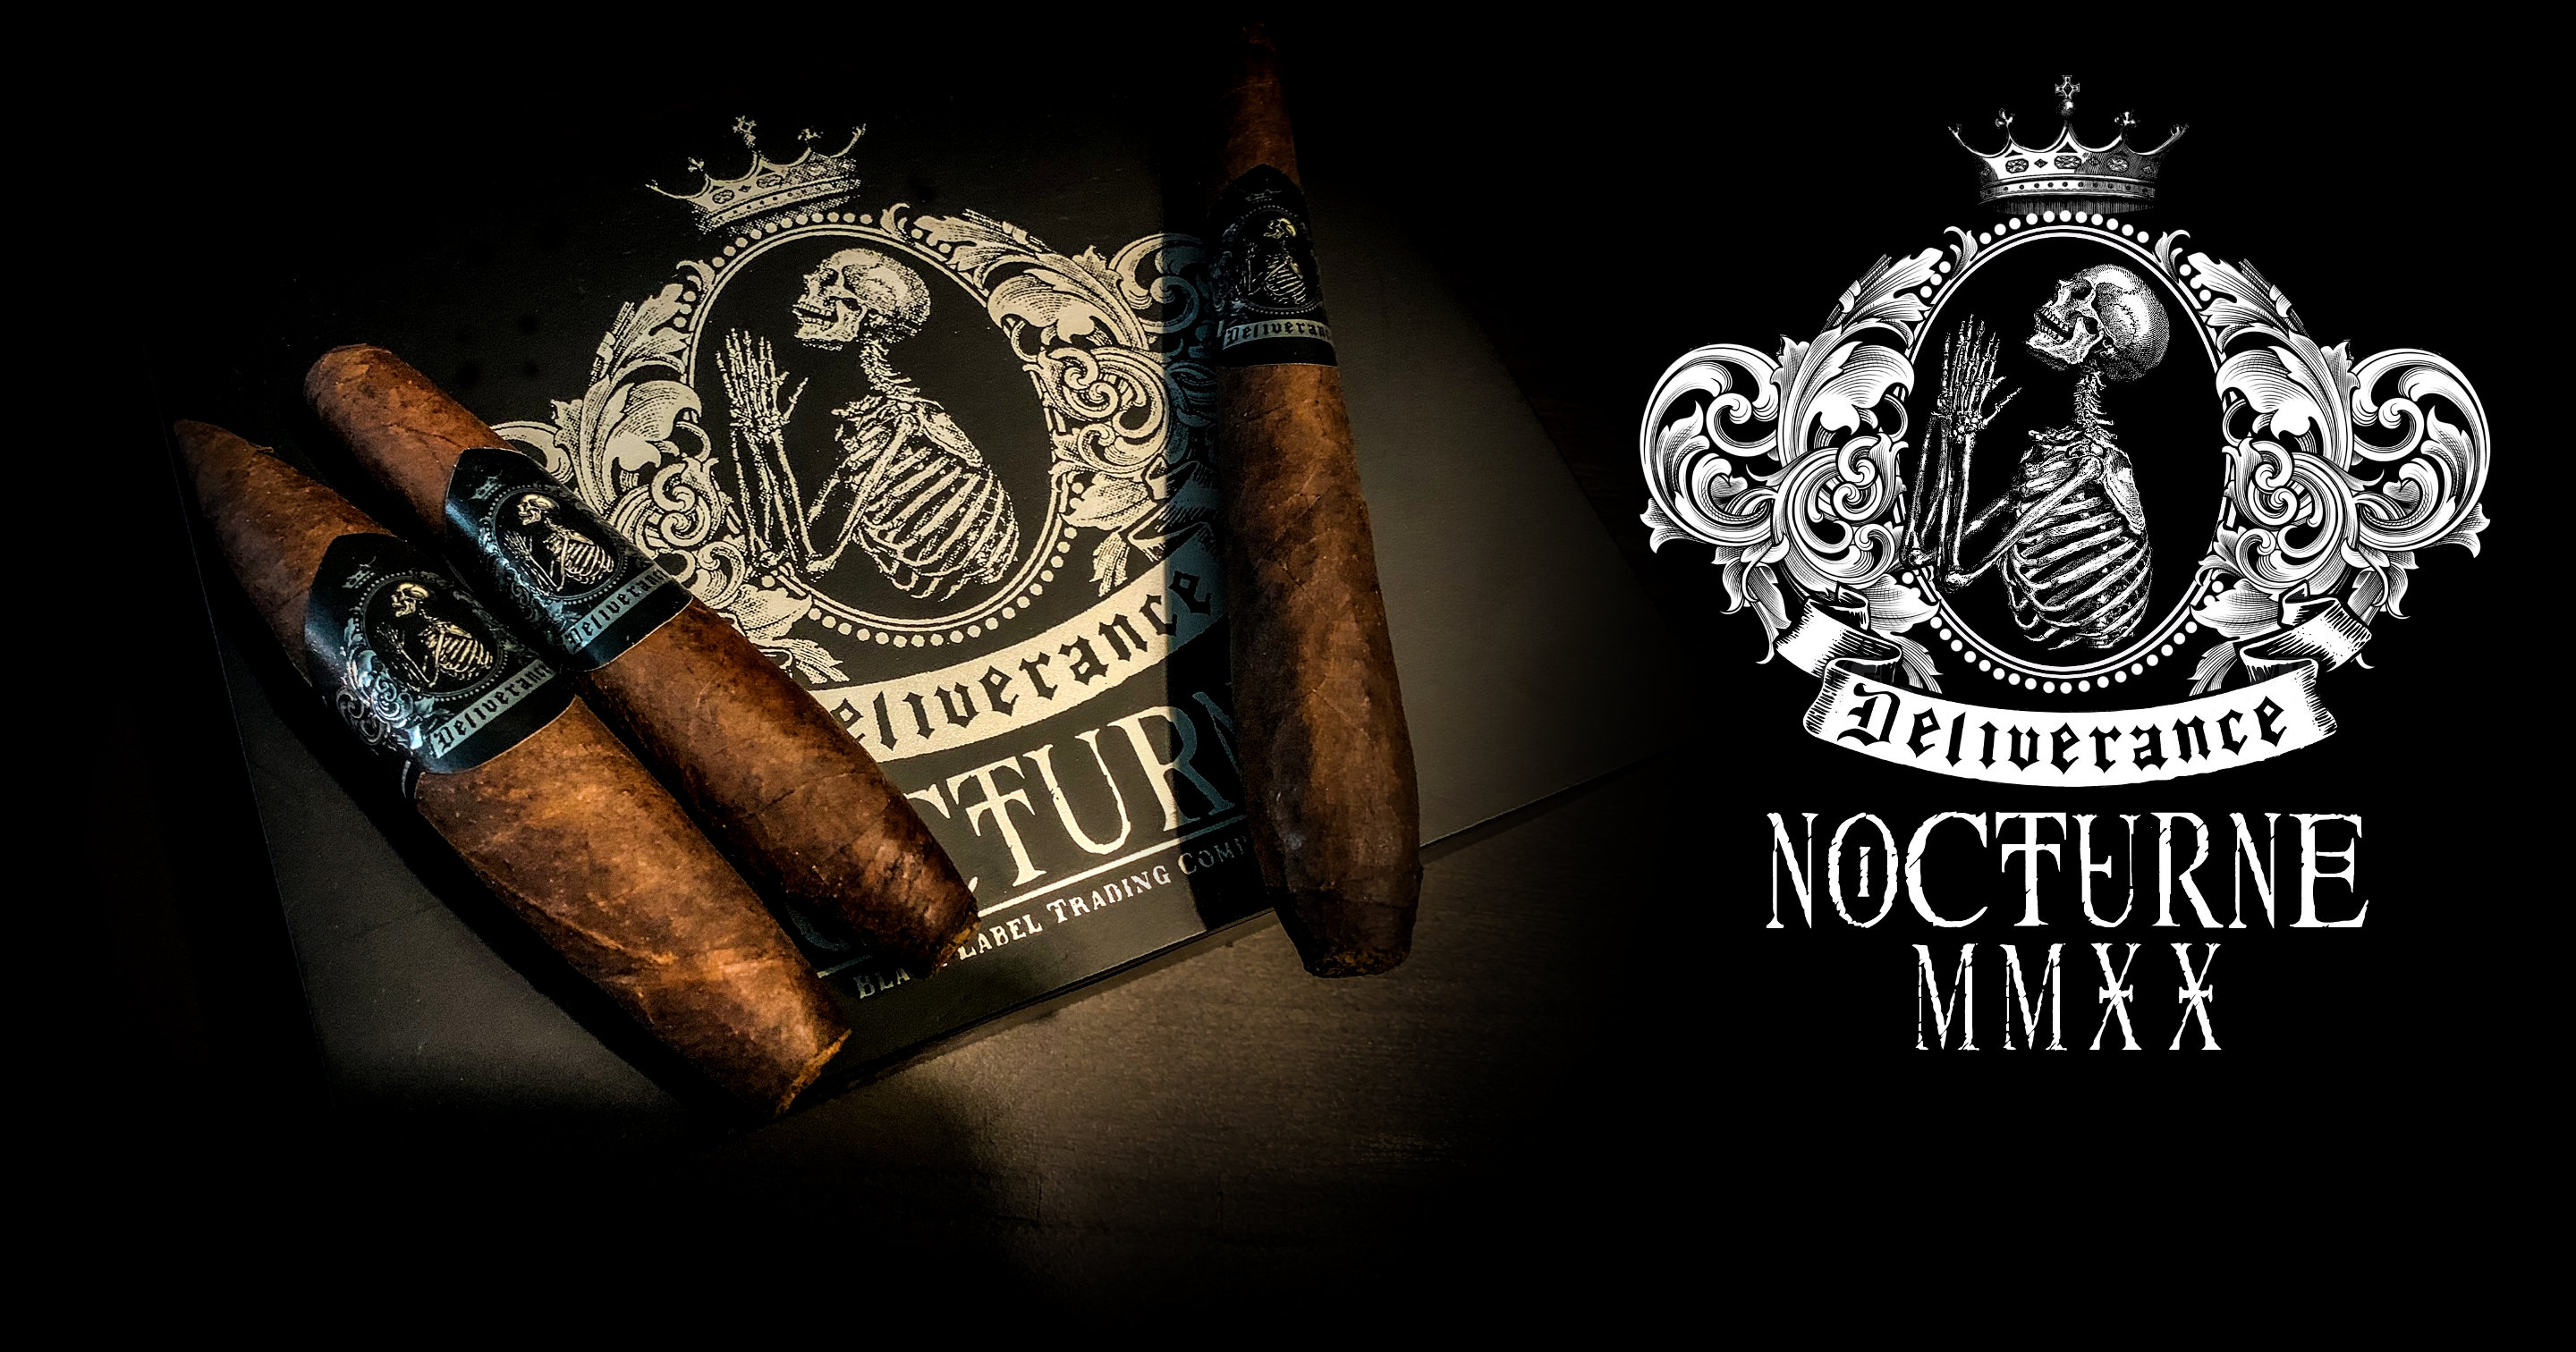 Cigar News: Black Label Trading Company Deliverance Nocturne Returns for 2020